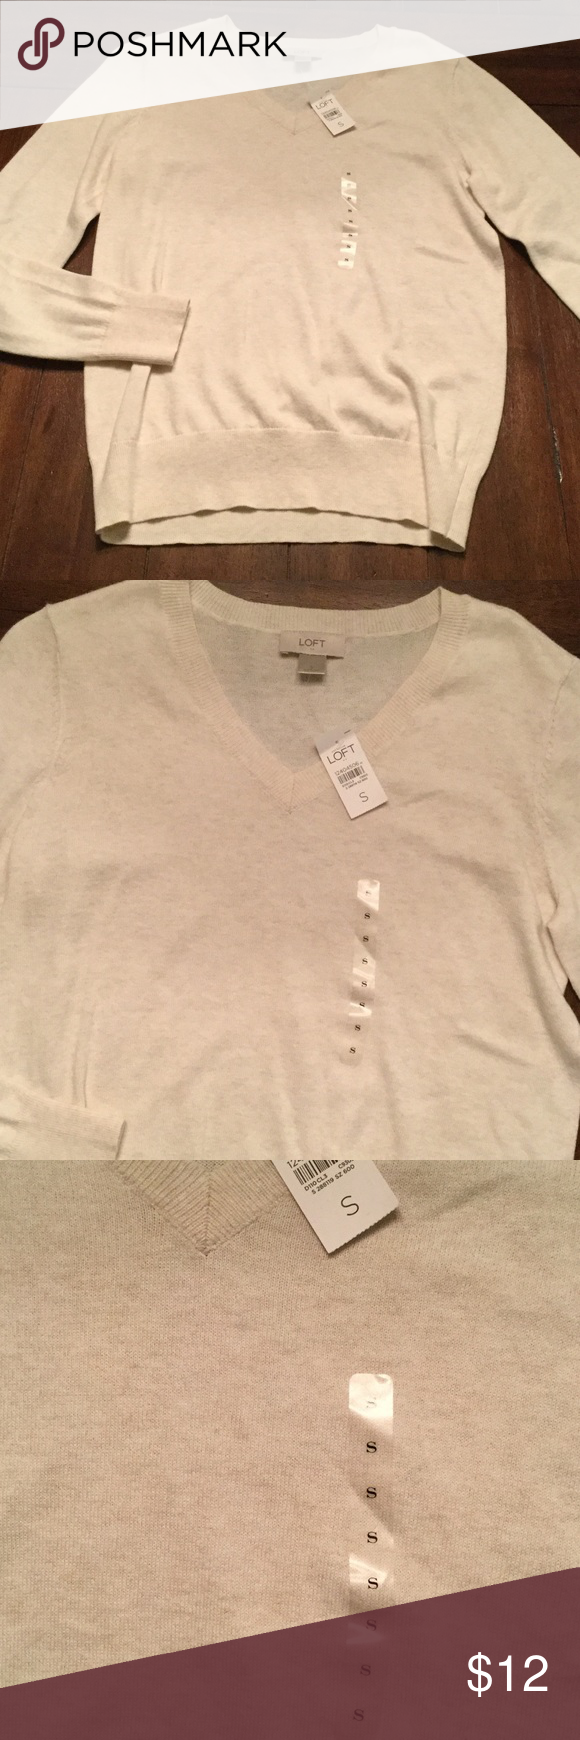 """NWT Loft Sweater Cream color v neck sweater from Ann Taylor Loft. New with tags. Faint spot near """"small"""" sticker shown in third photo. This will probably come out when washed. LOFT Sweaters V-Necks"""